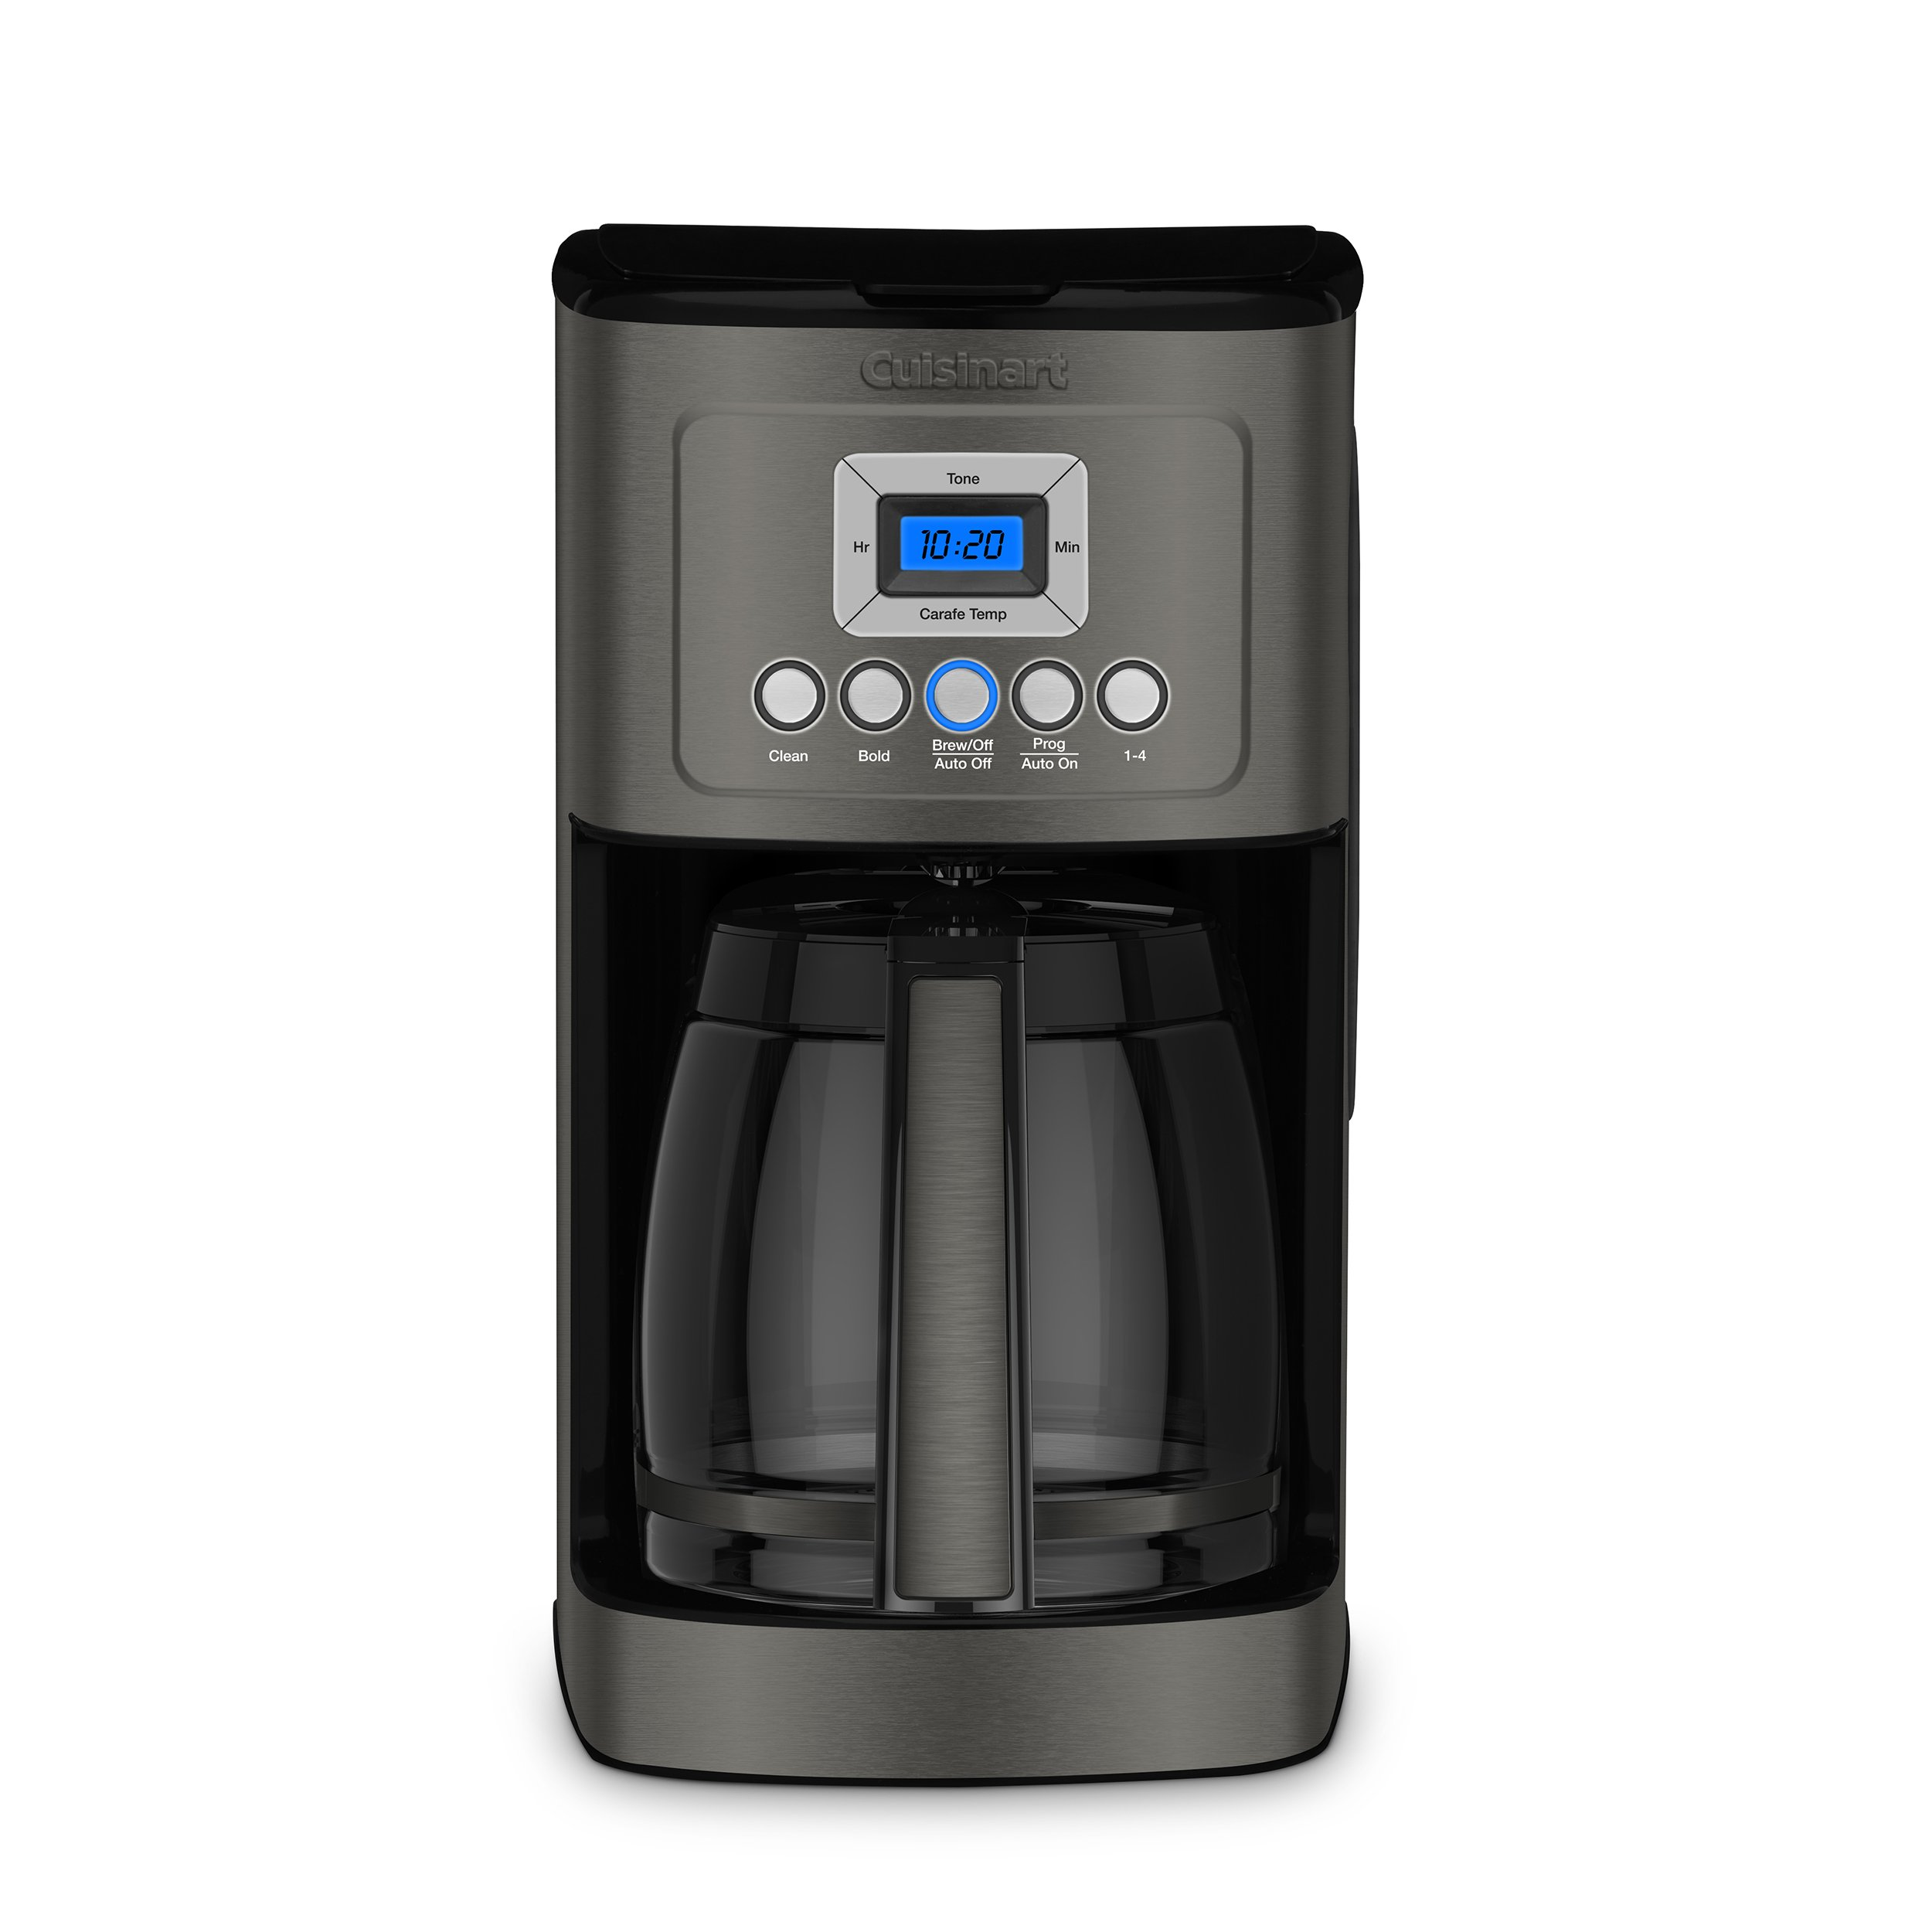 Cuisinart DCC-3200BKS Perfectemp Coffee Maker, 14 Cup Glass Carafe Black Stainless Steel